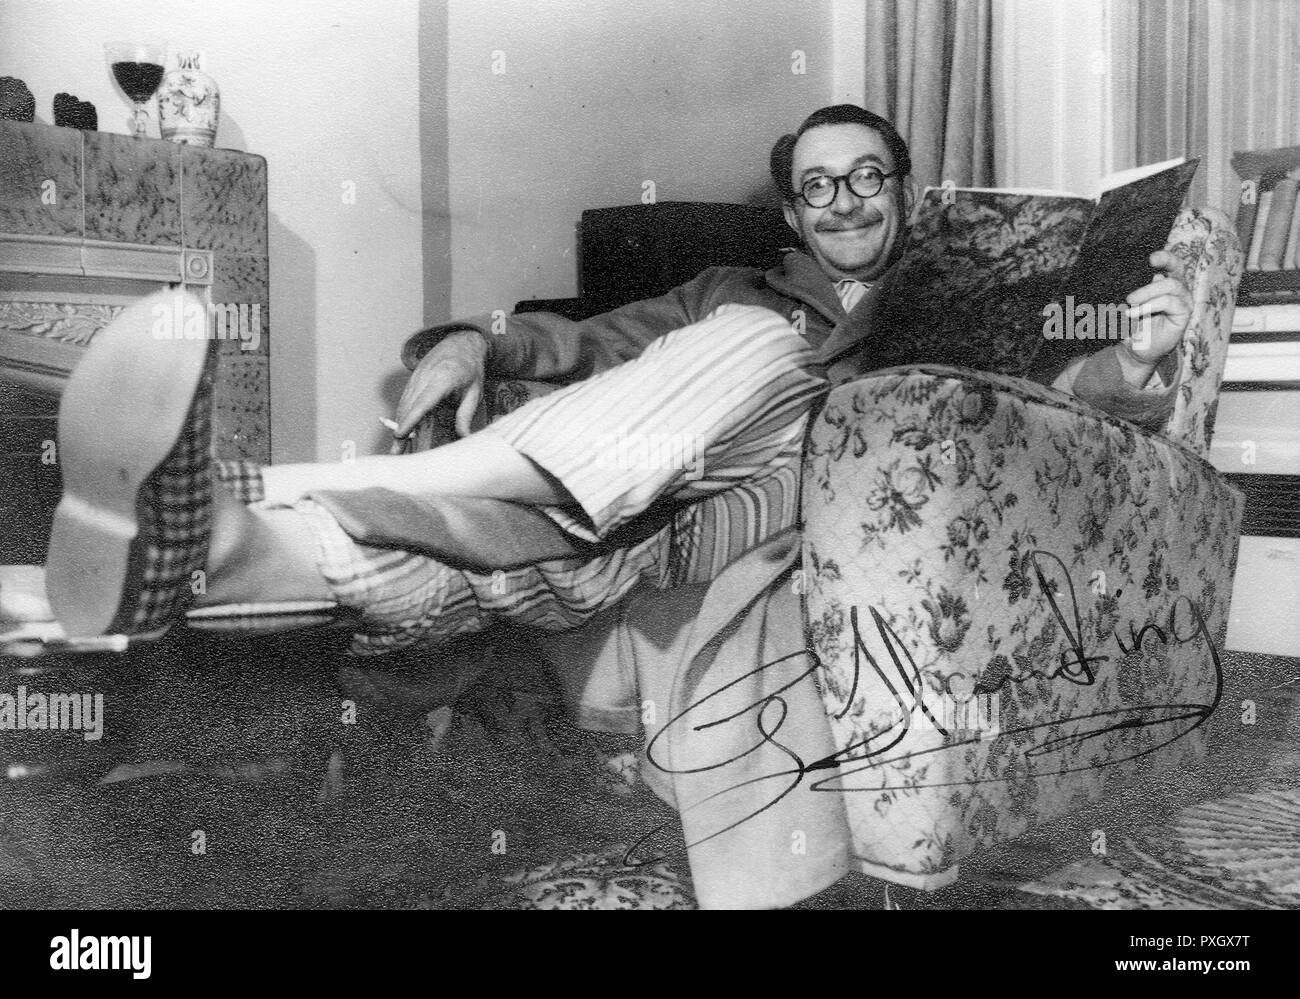 Gilbert Charles Harding (19071960) - English journalist and radio and television personality. His many careers included schoolmaster, journalist, policeman, disc-jockey, actor, interviewer and television presenter.     Date: circa 1950s - Stock Image